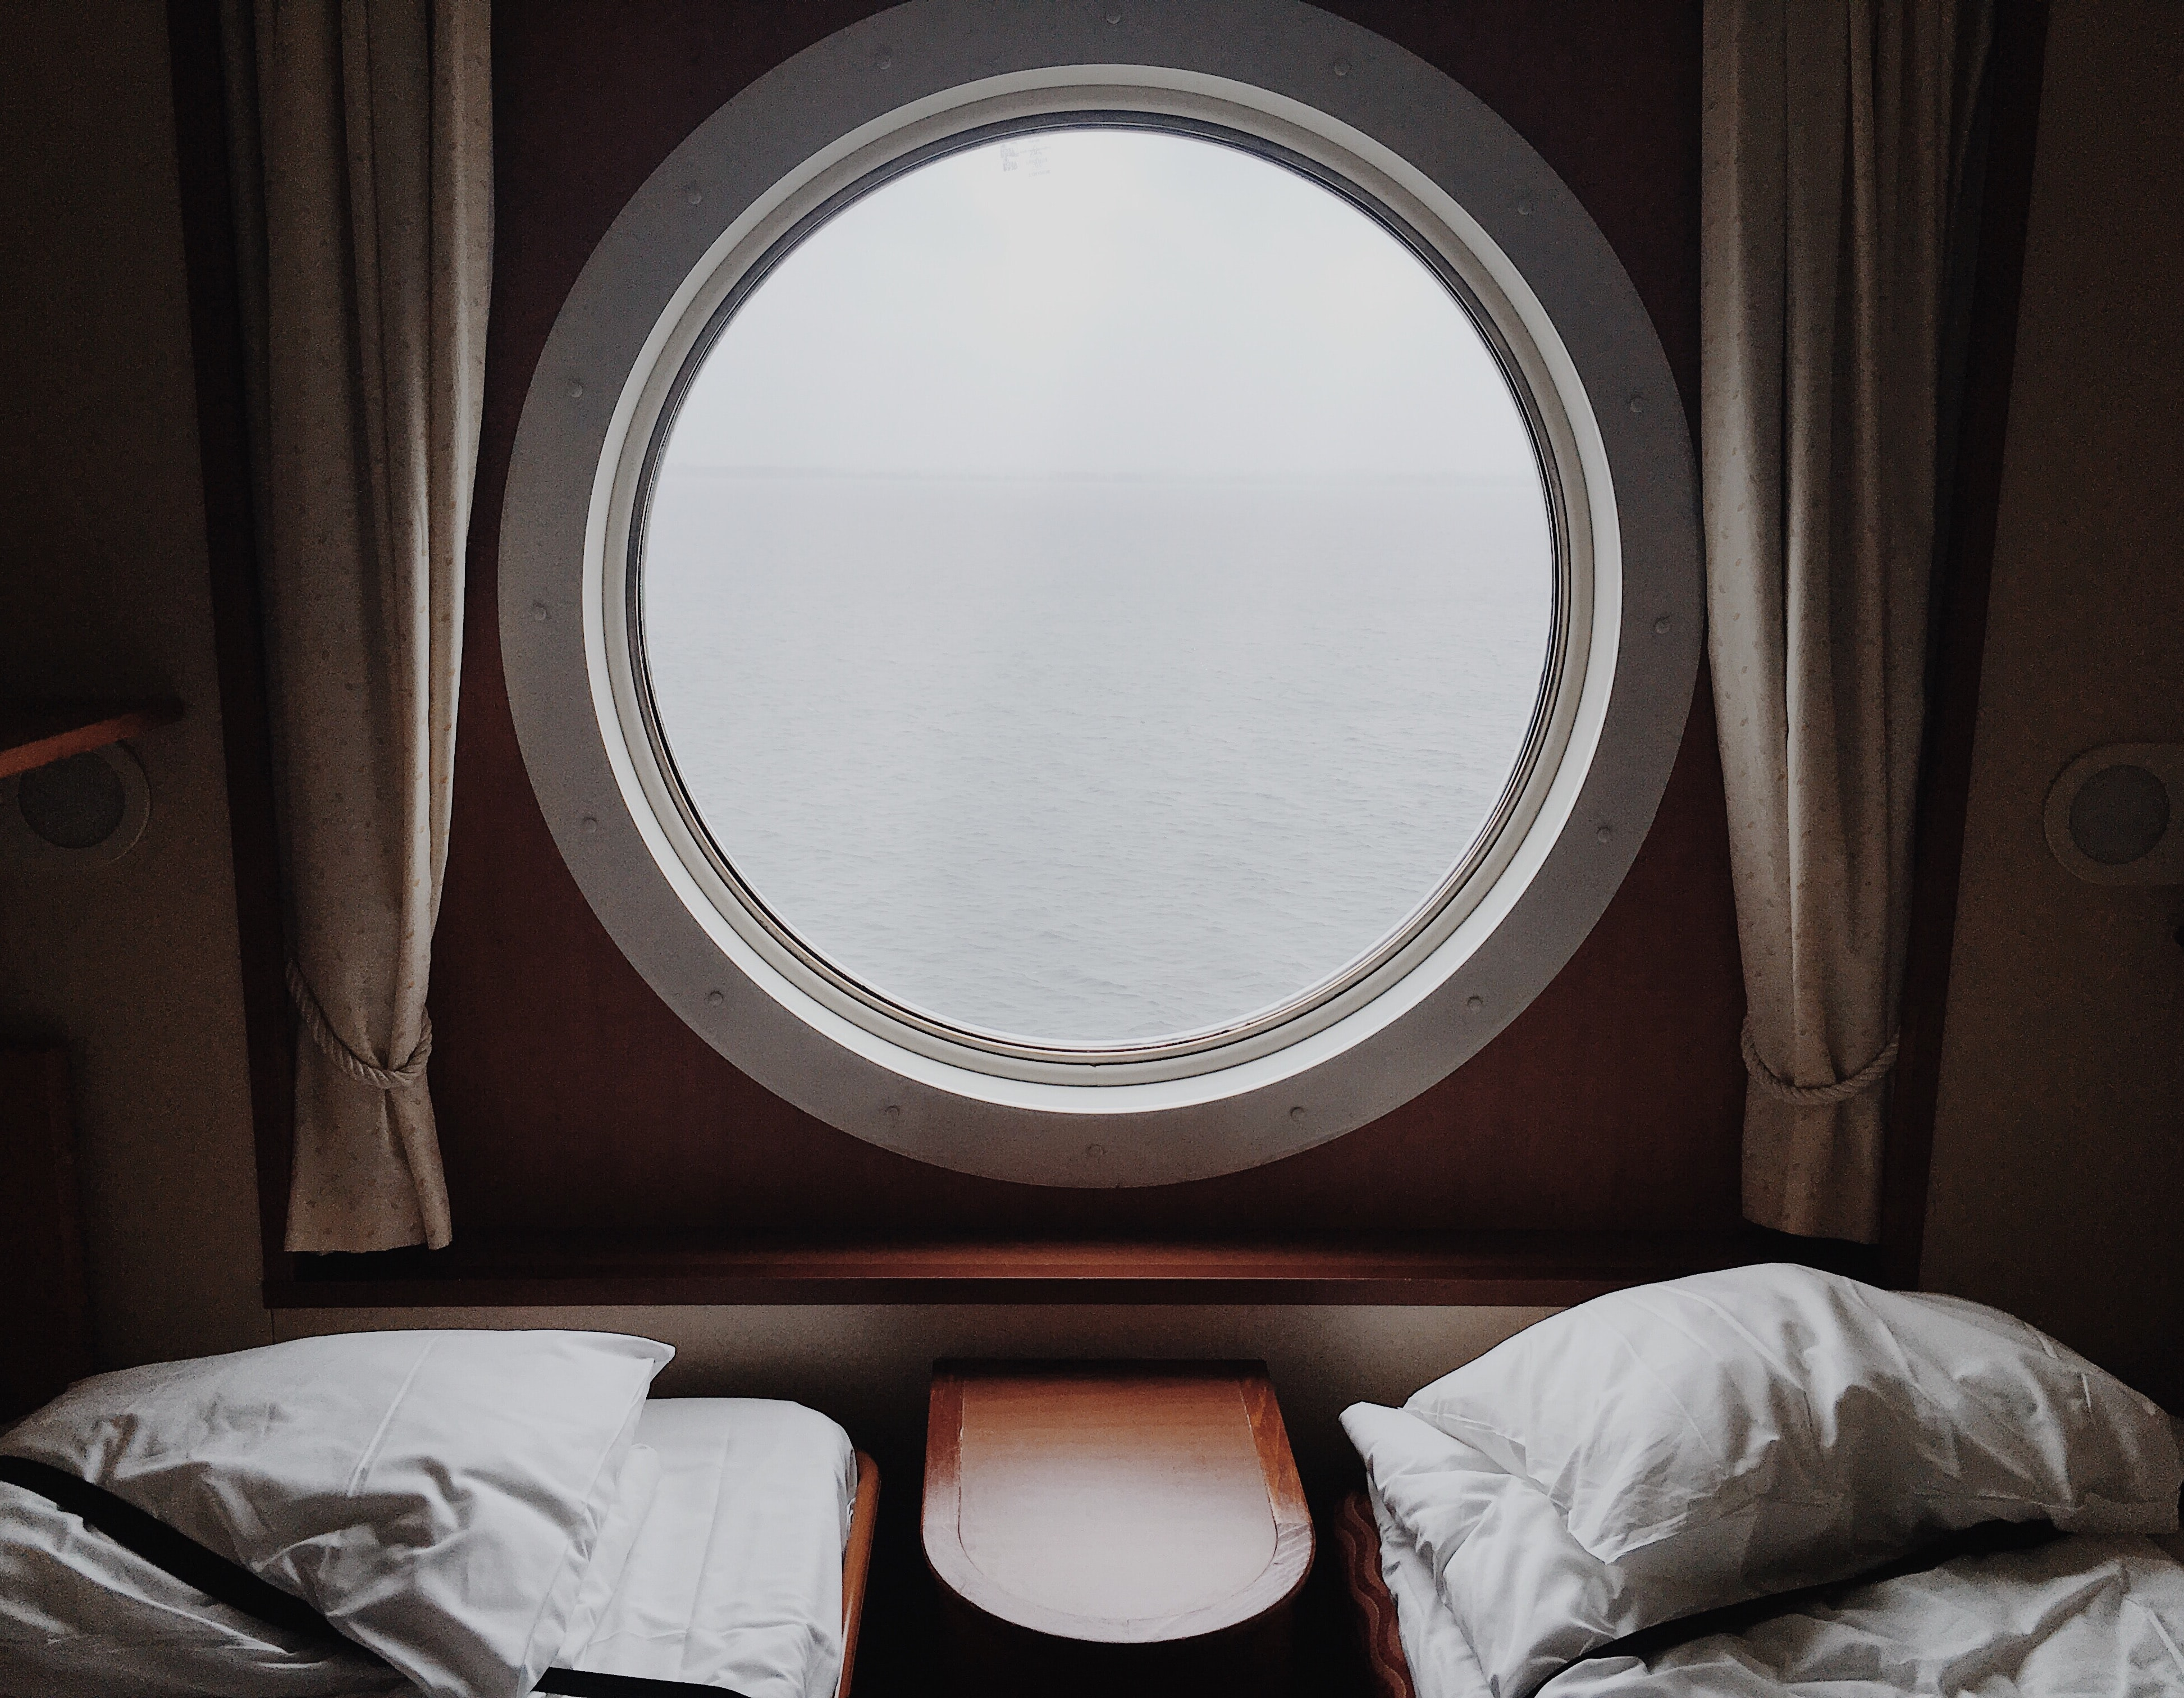 Two beds with pillows on either side of a circular window with curtains overlooking water